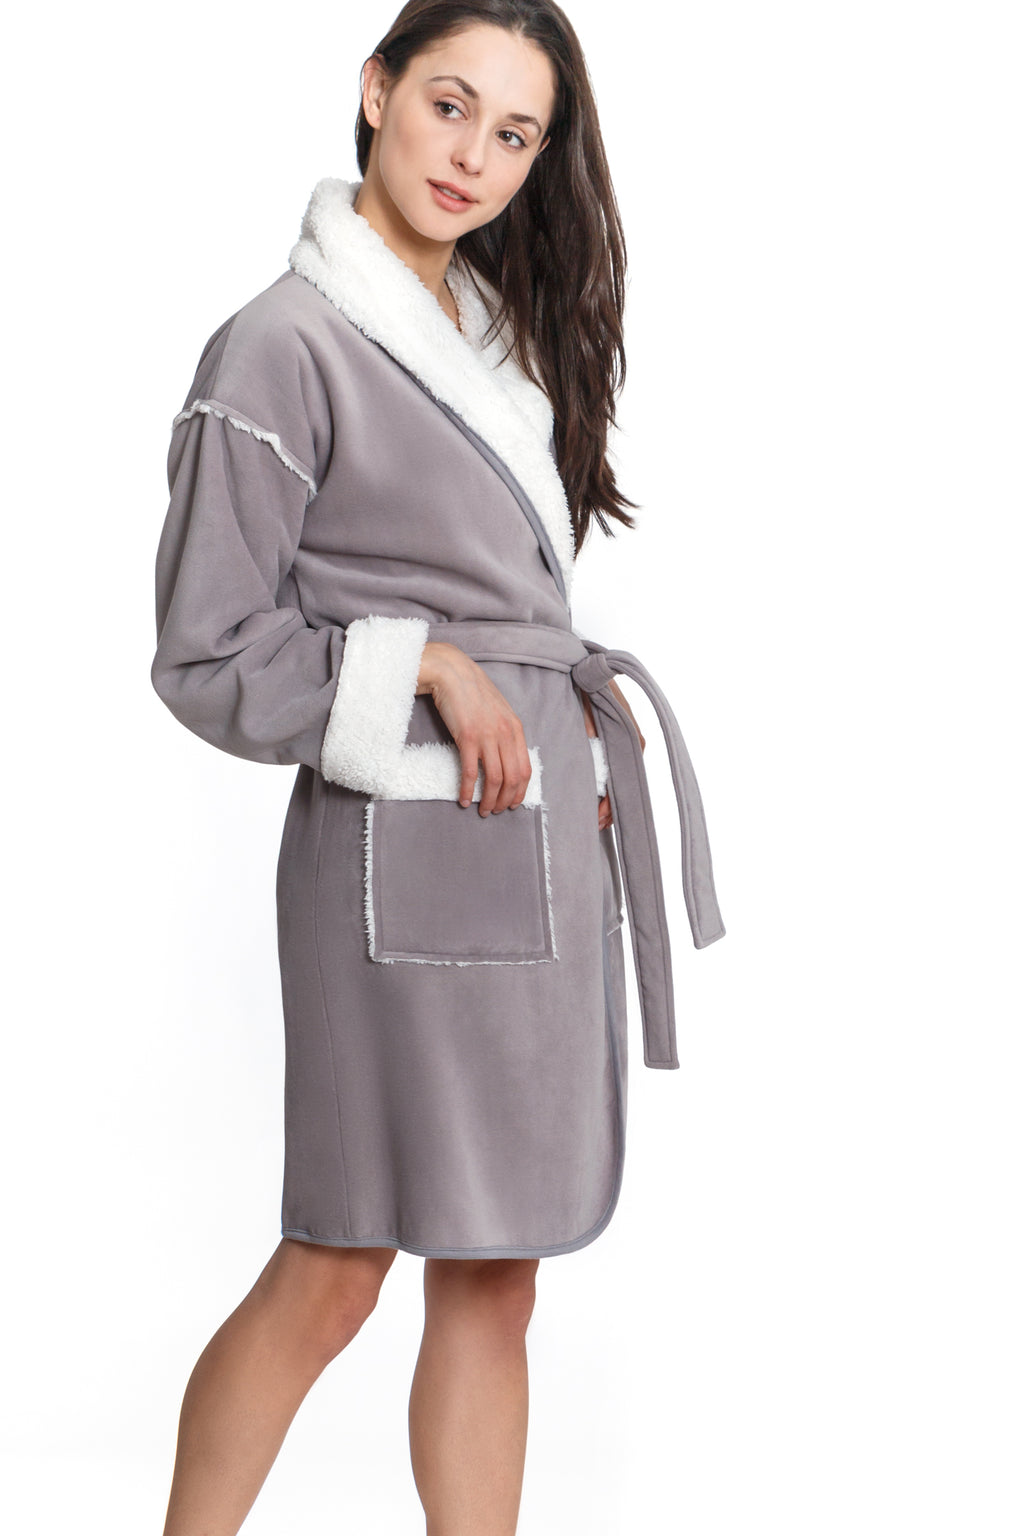 Short Sherpa Lined Robe - Grey